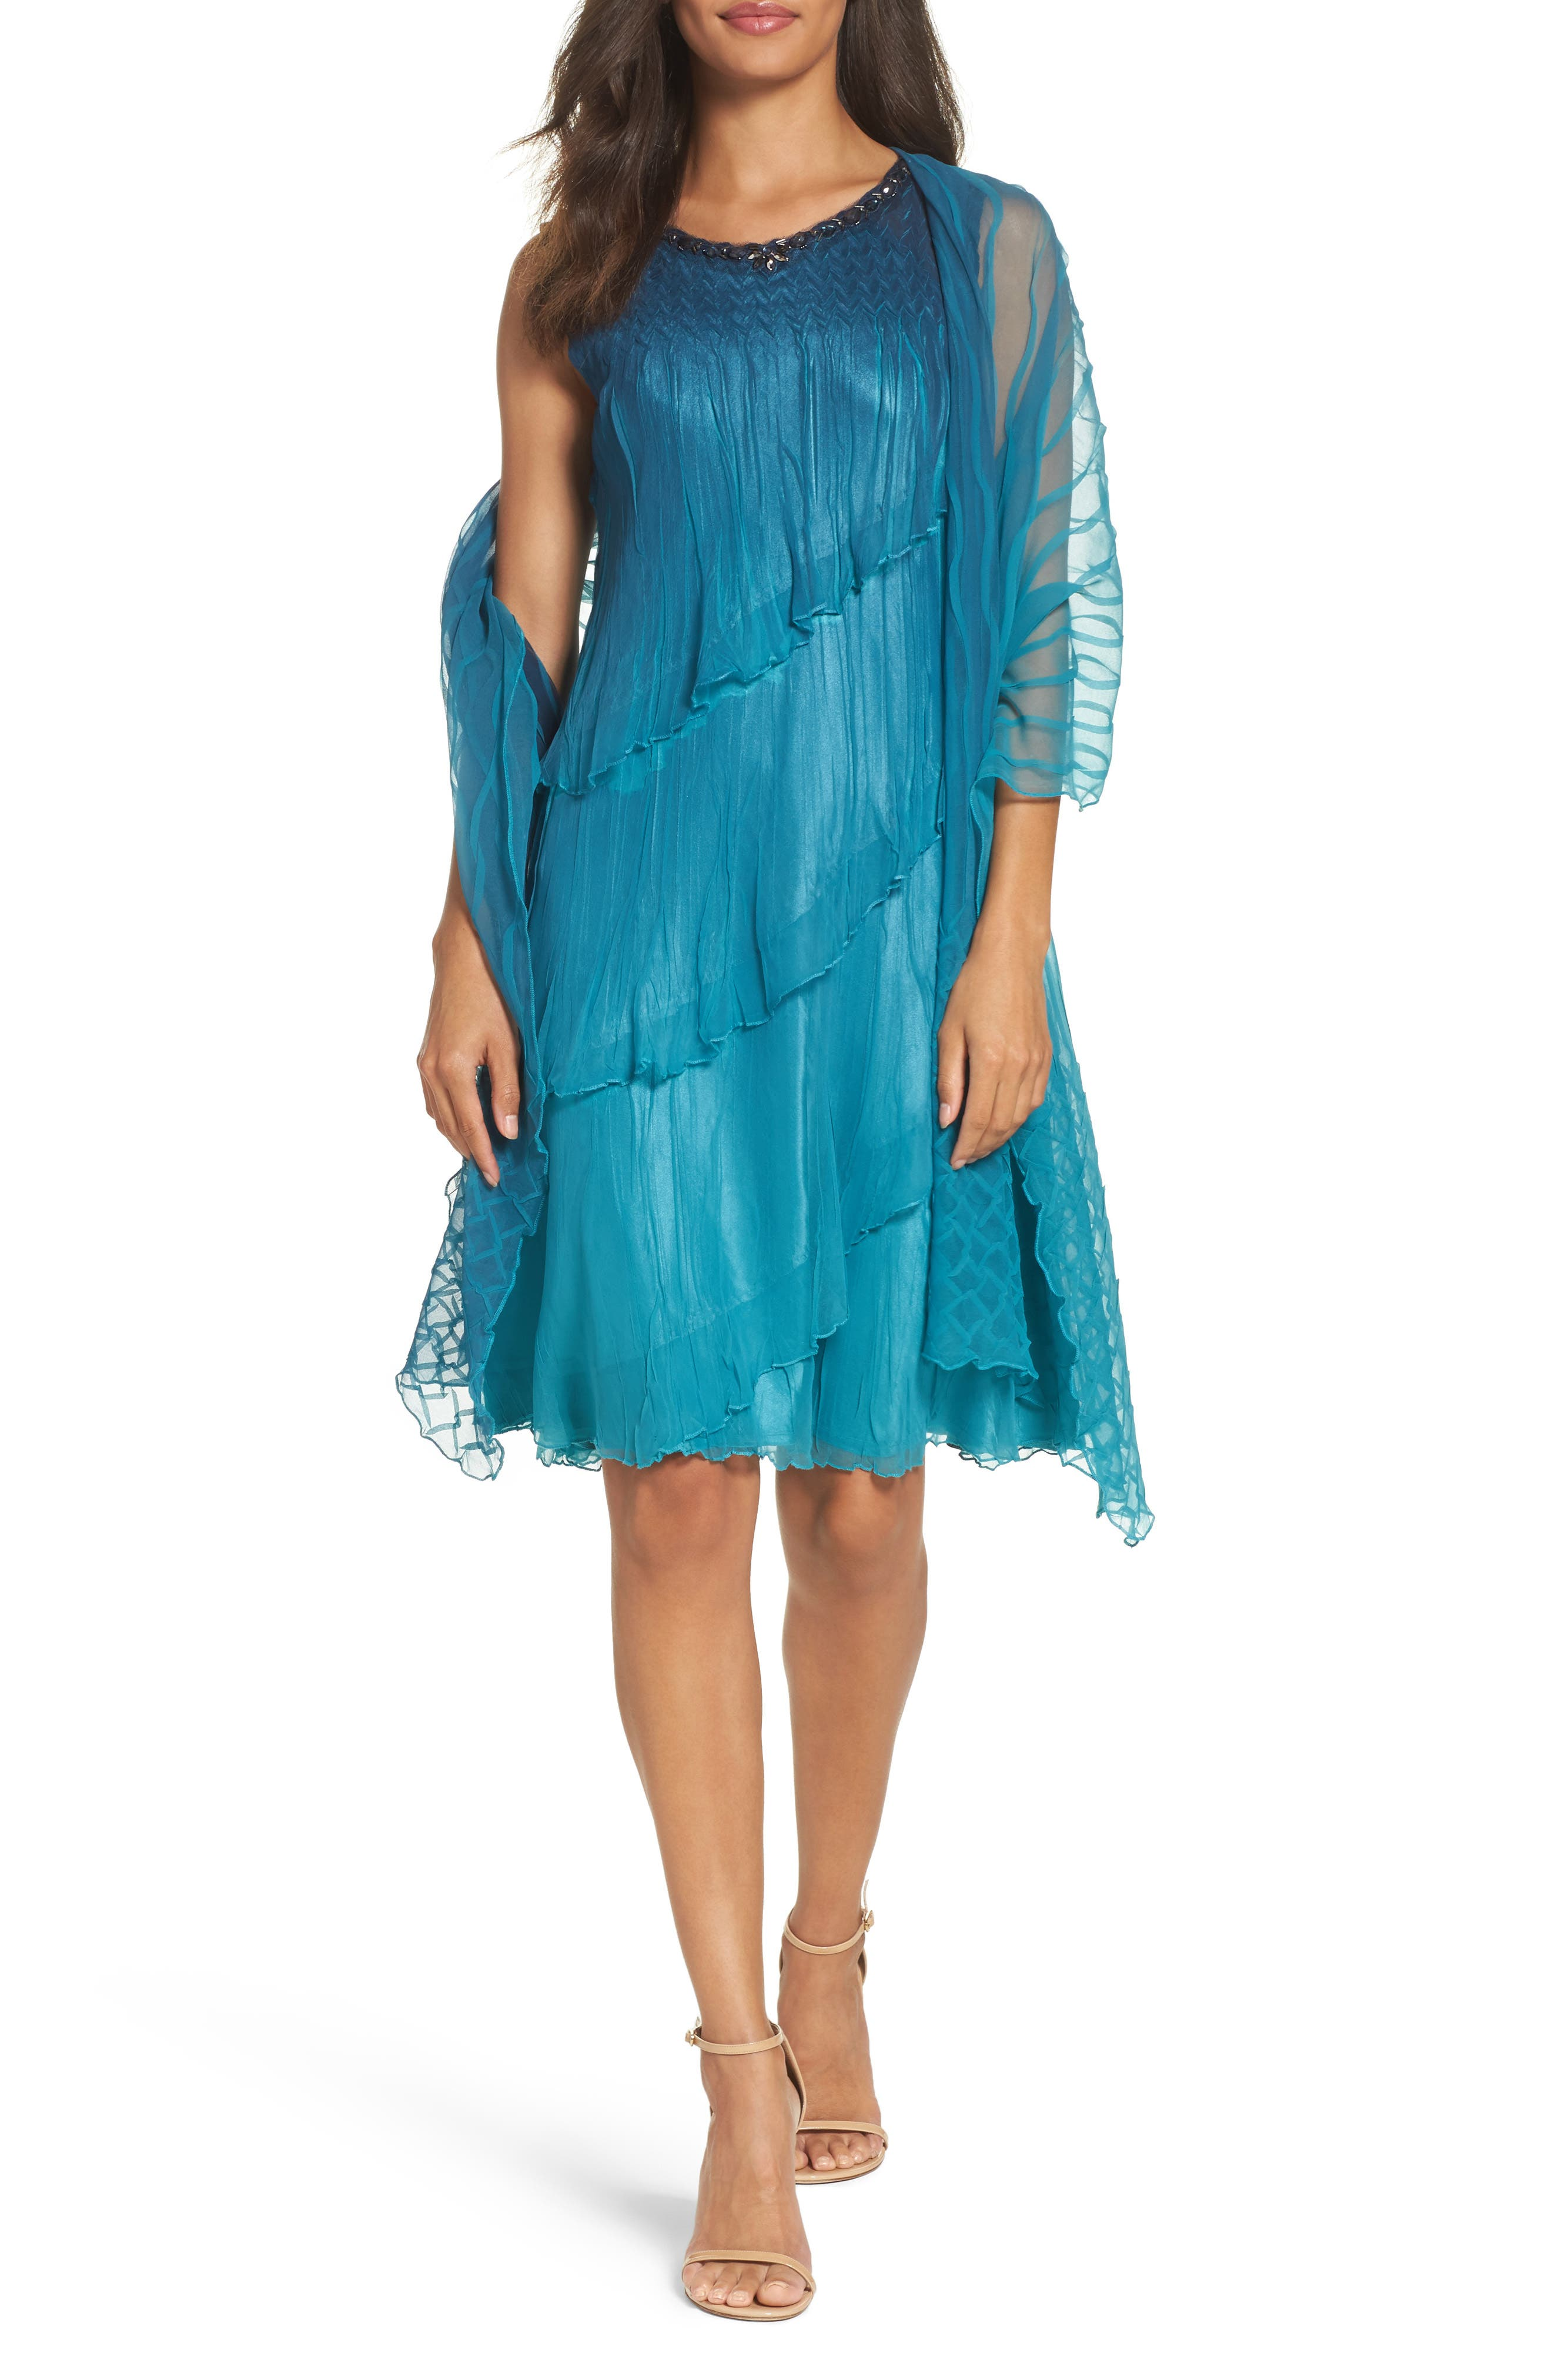 Tiered Chiffon Shift Dress with Shawl,                             Alternate thumbnail 6, color,                             Marine Night Ombre